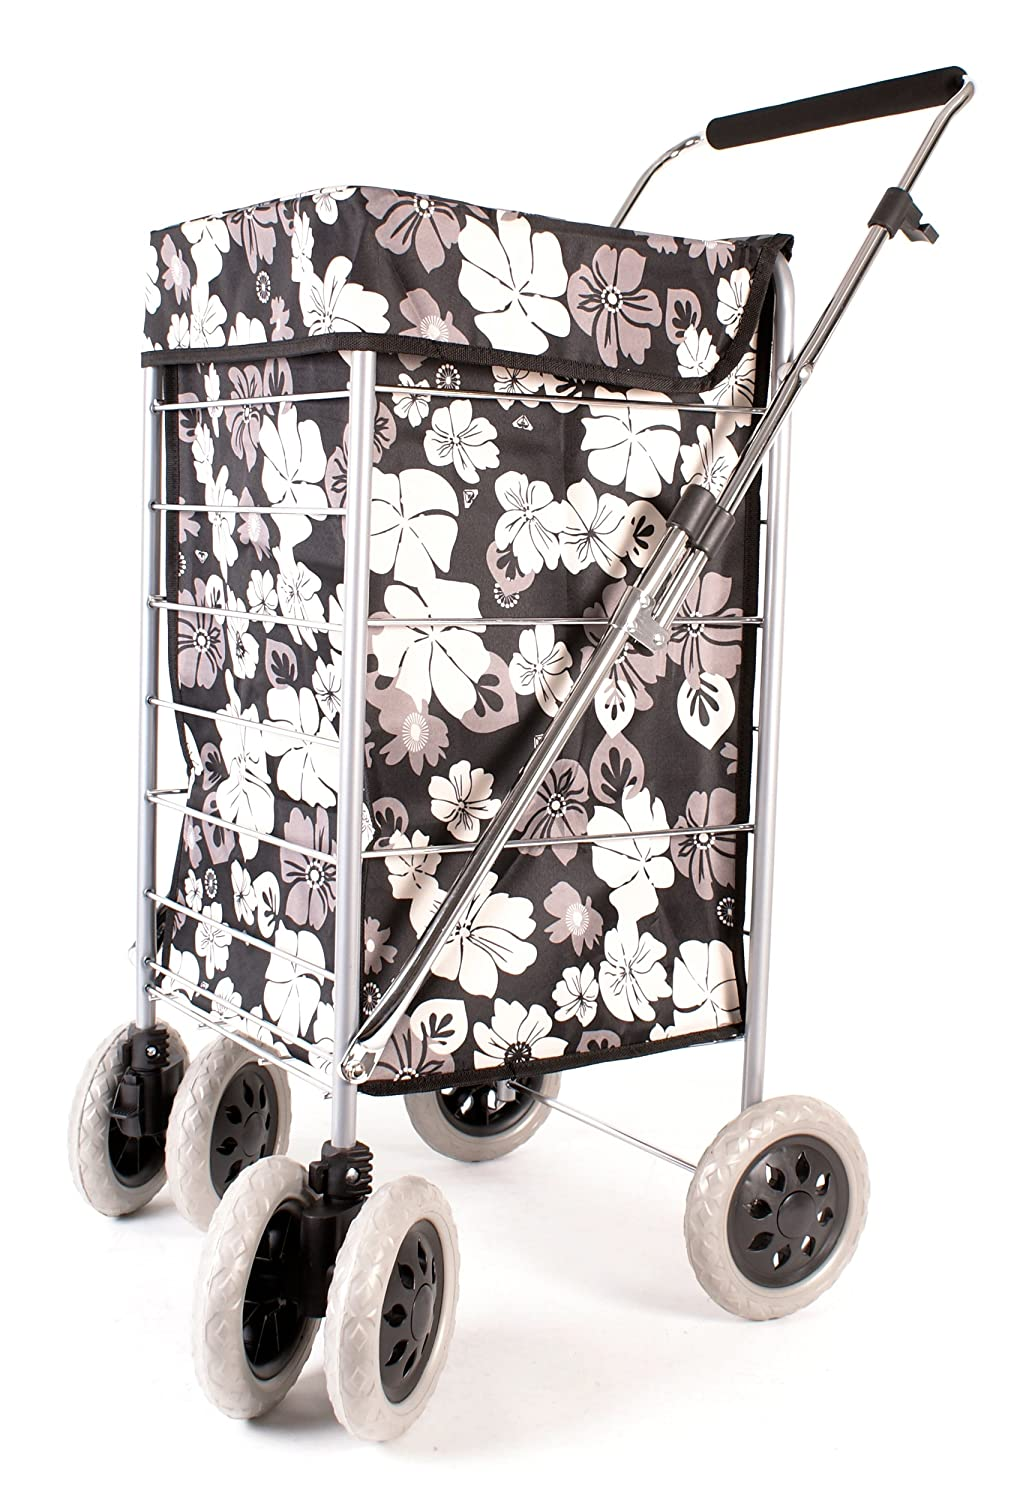 Premium 6 Wheel Swivel Shopping Trolley with Adjustable Handle Black with Grey and White Floral Print ST-SIX-01